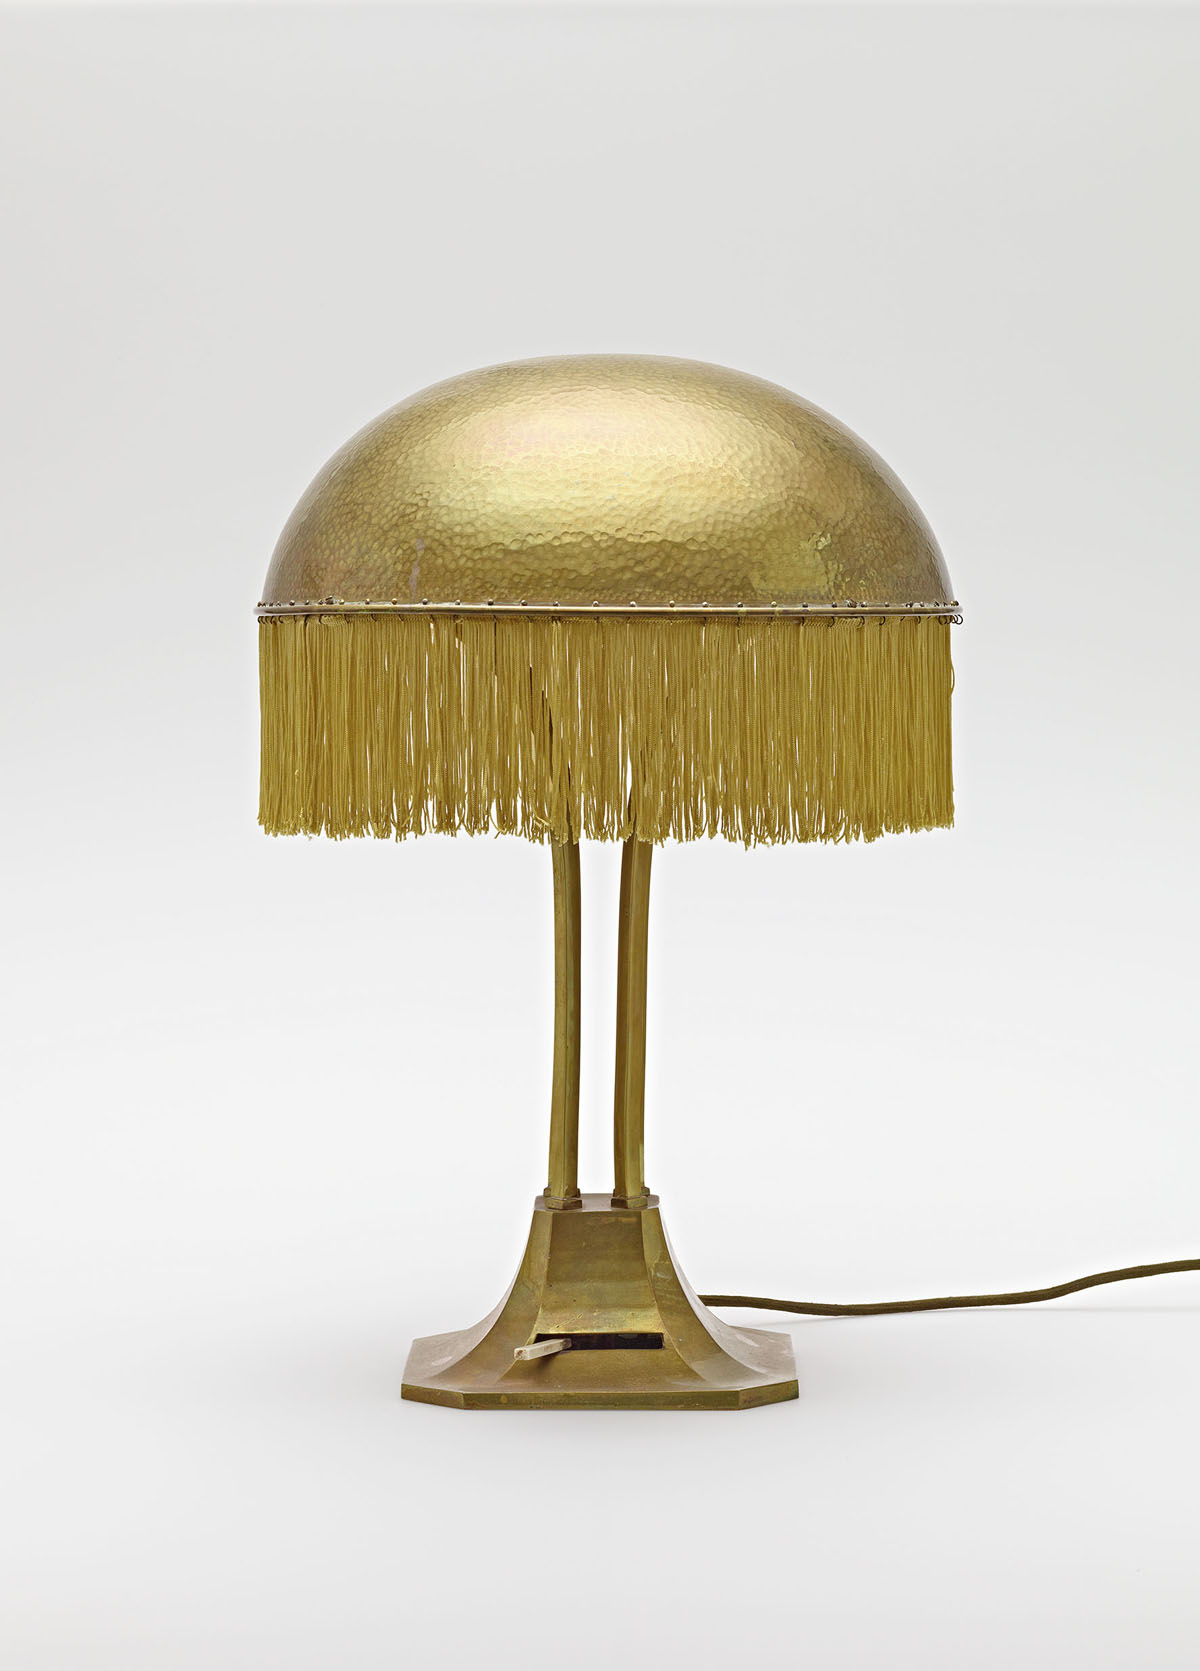 Adolf Loos, Table lamp from the Turnowsky residence, ca. 1900, Hummel collection, Vienna © MAK/Georg Mayer